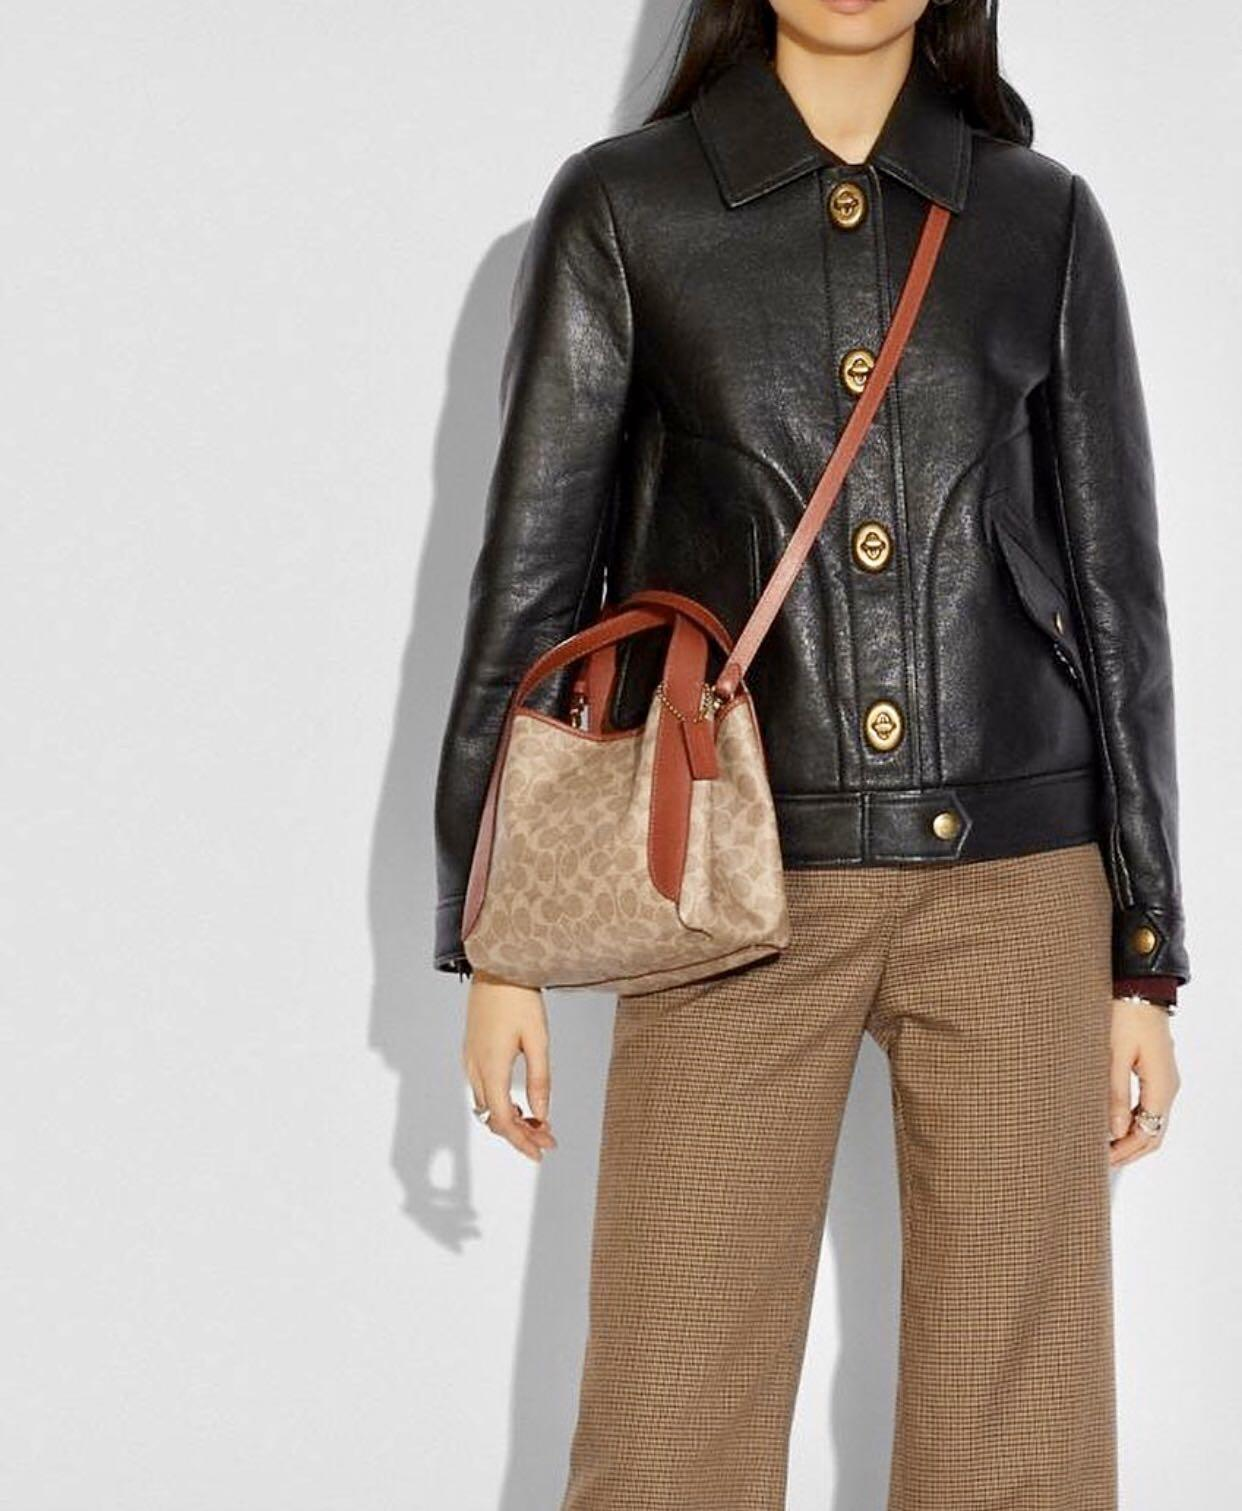 REPRICE Coach Hadley 21 Hobo Bag #coach #prelovedcoach #payday #flashsale #gooddeal #joinmaret #joinapril